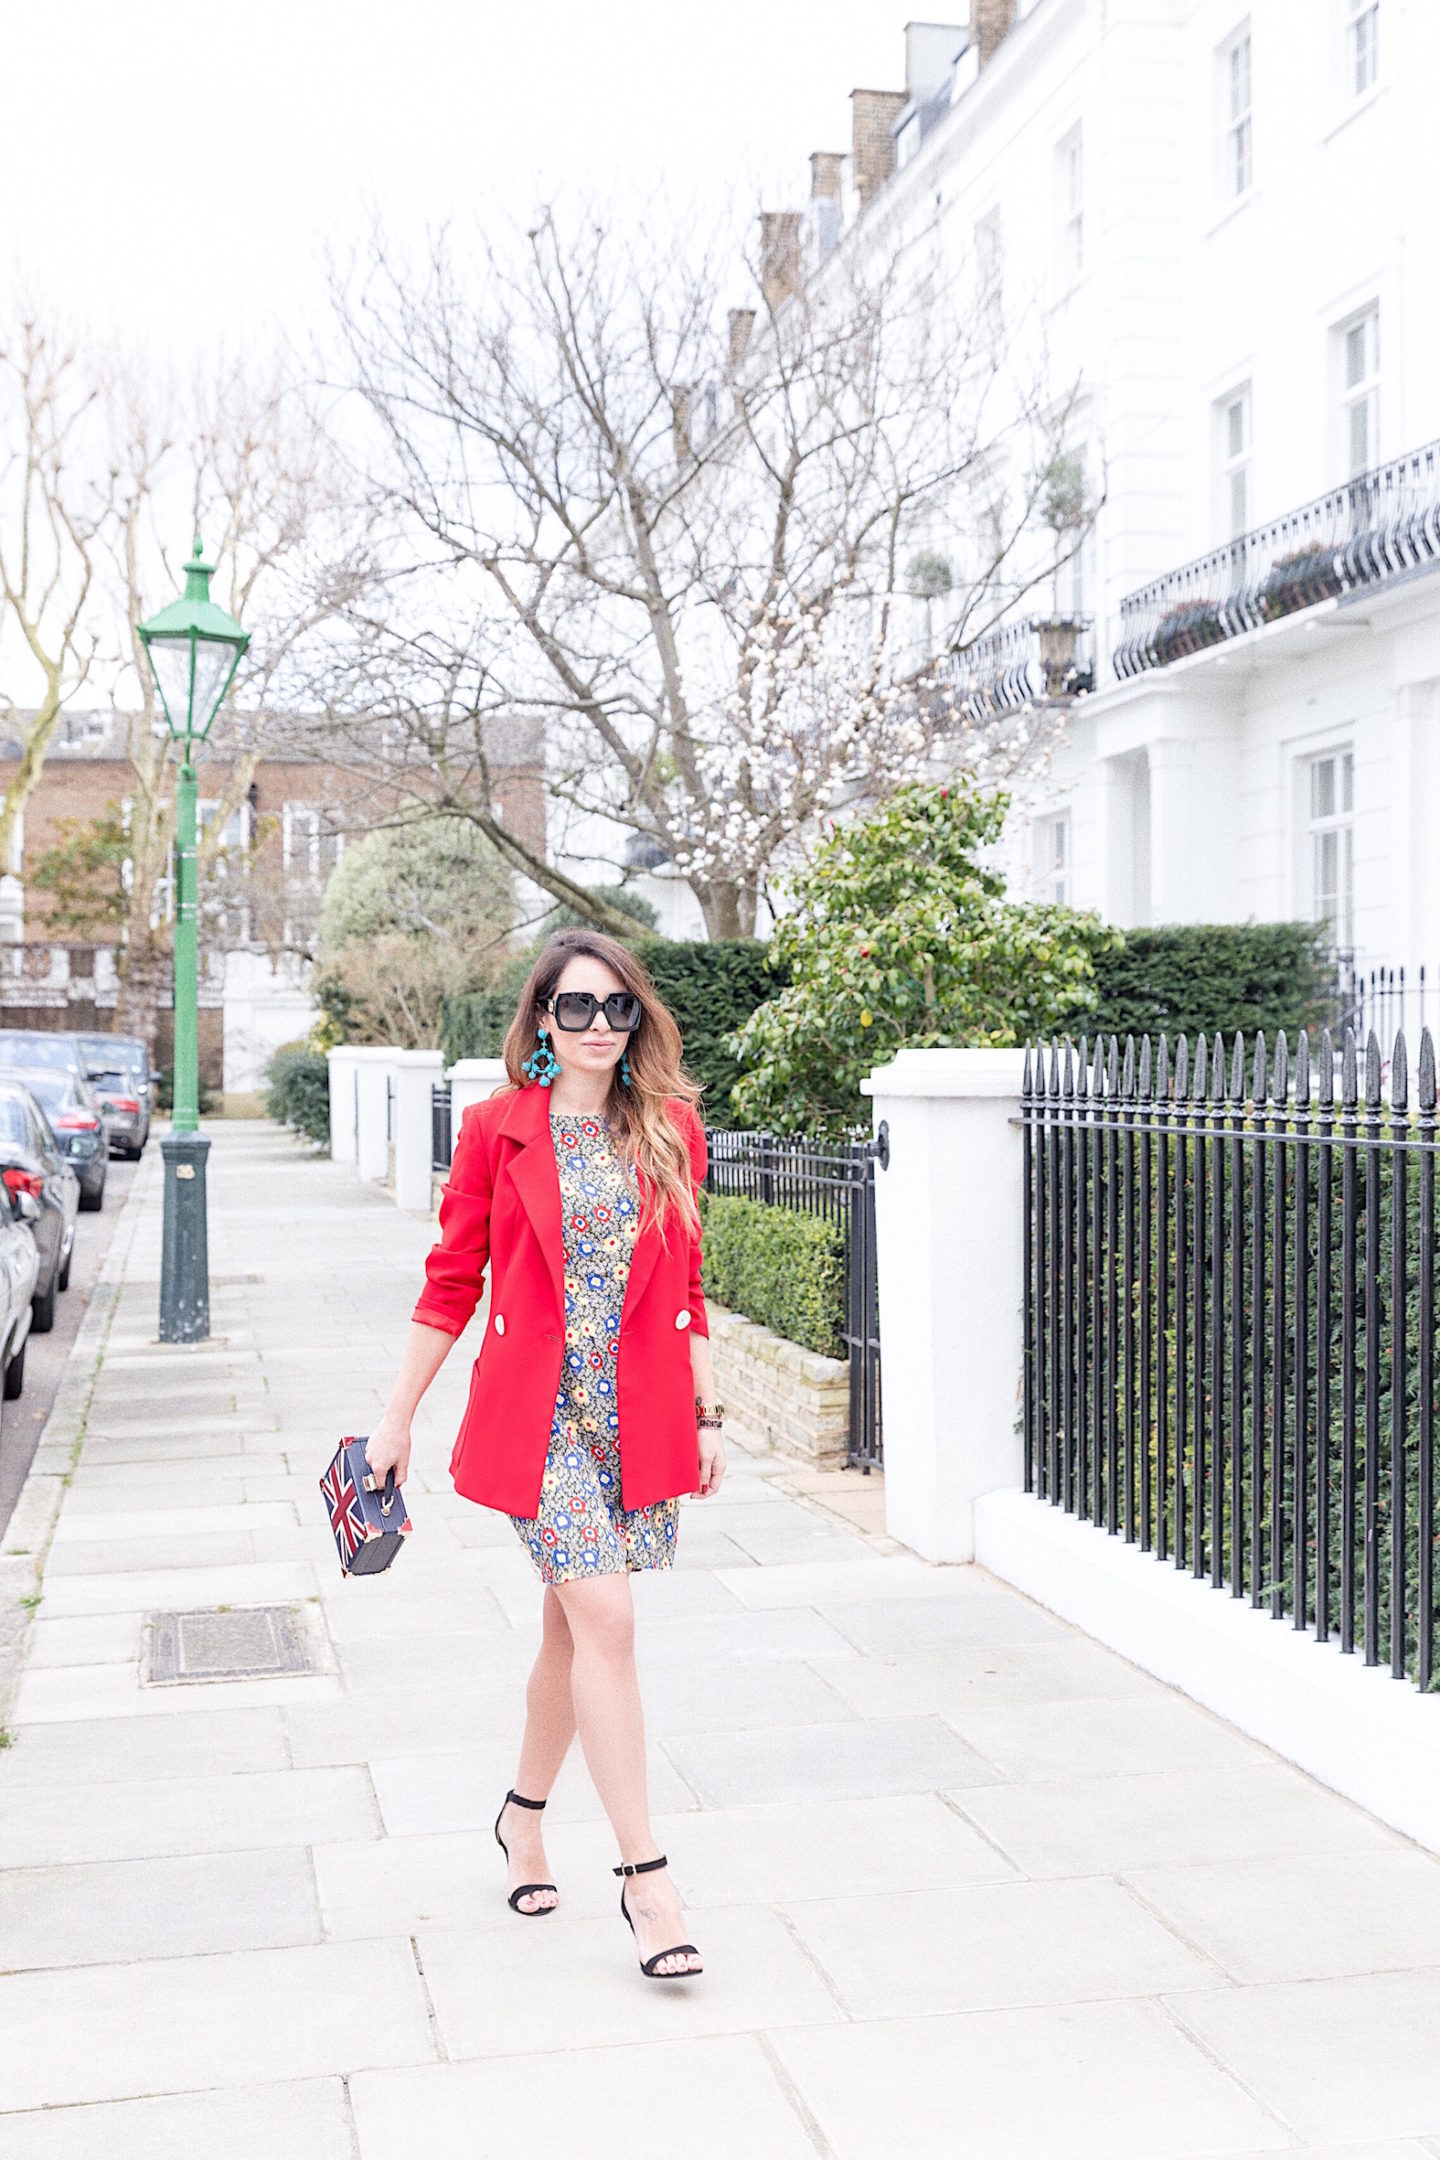 foral dress and red blazer